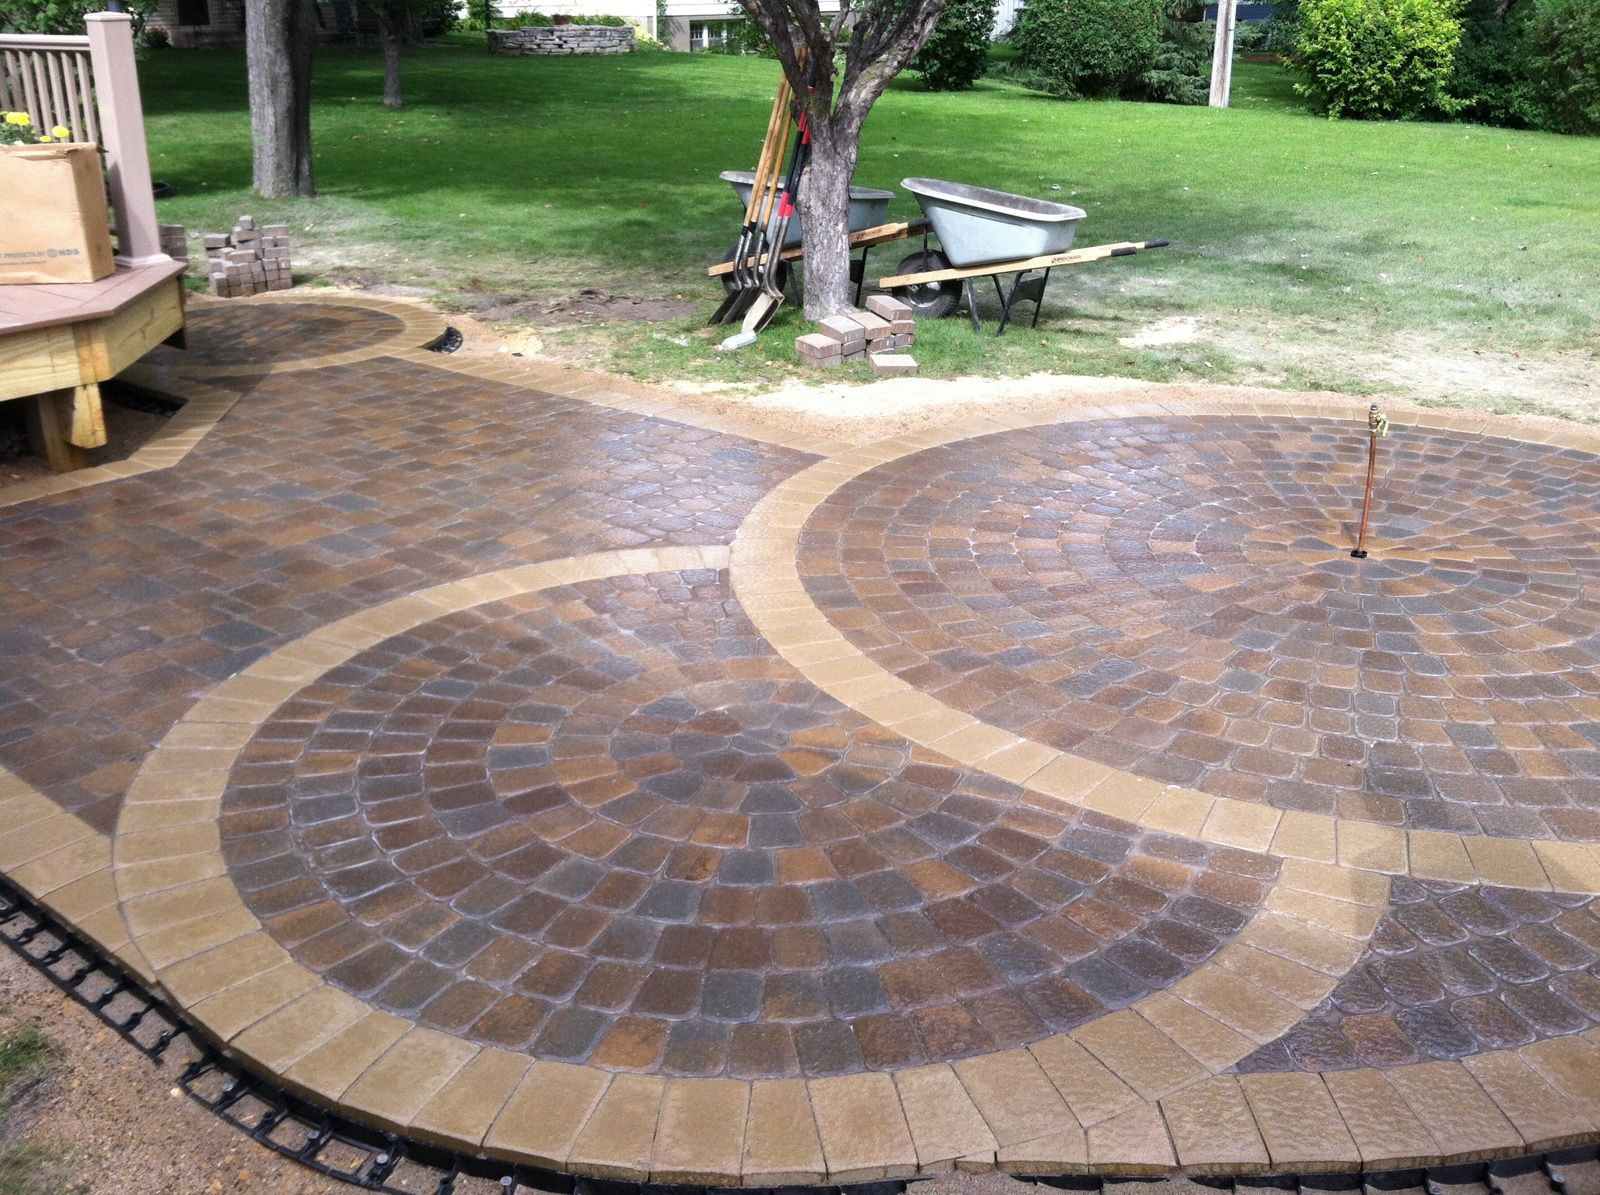 The Nearly Completed Circular #patio. Anchor Kingston #pavers Were Used In  The Center Of The Patio And Buff Limestone Pavers Were Used Around The  Border.